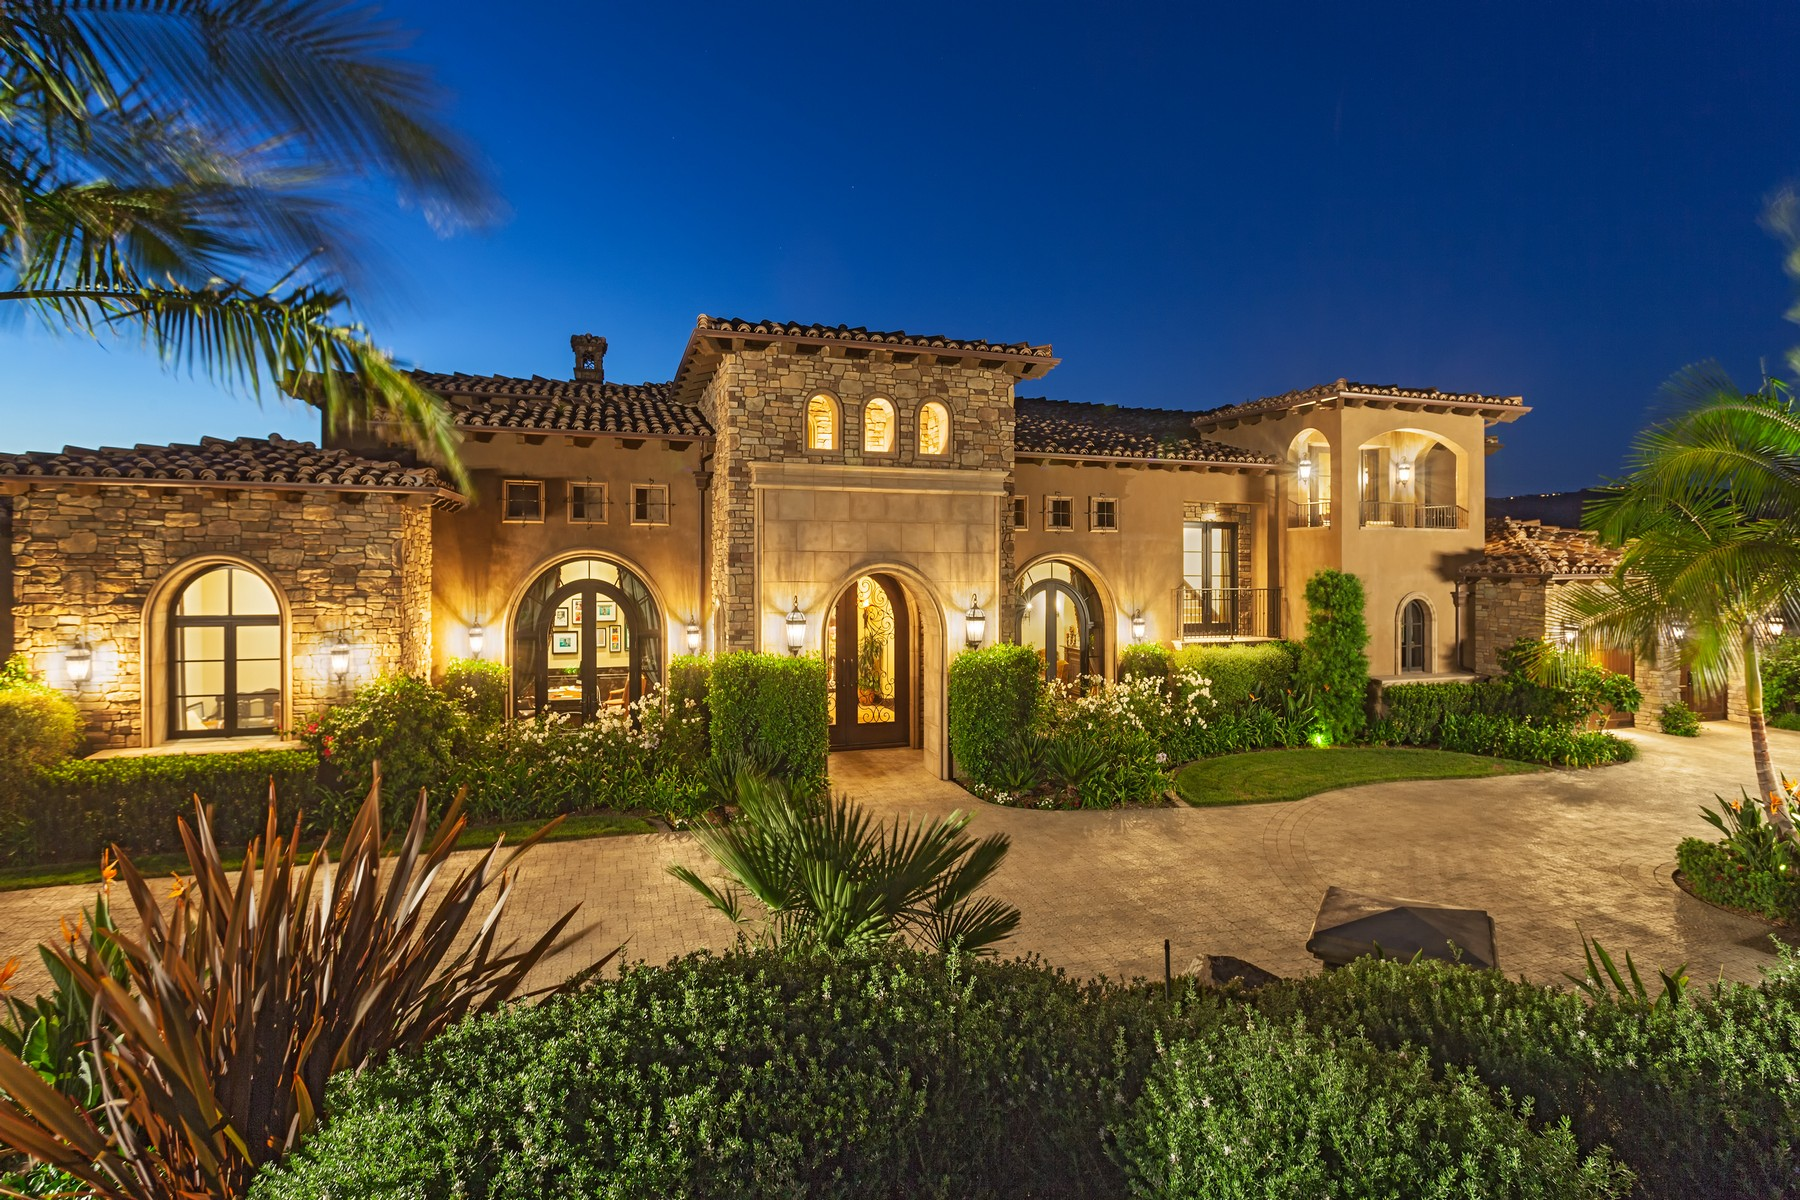 Villa per Vendita alle ore 7676 Top O the Morning Way San Diego, California 92127 Stati Uniti